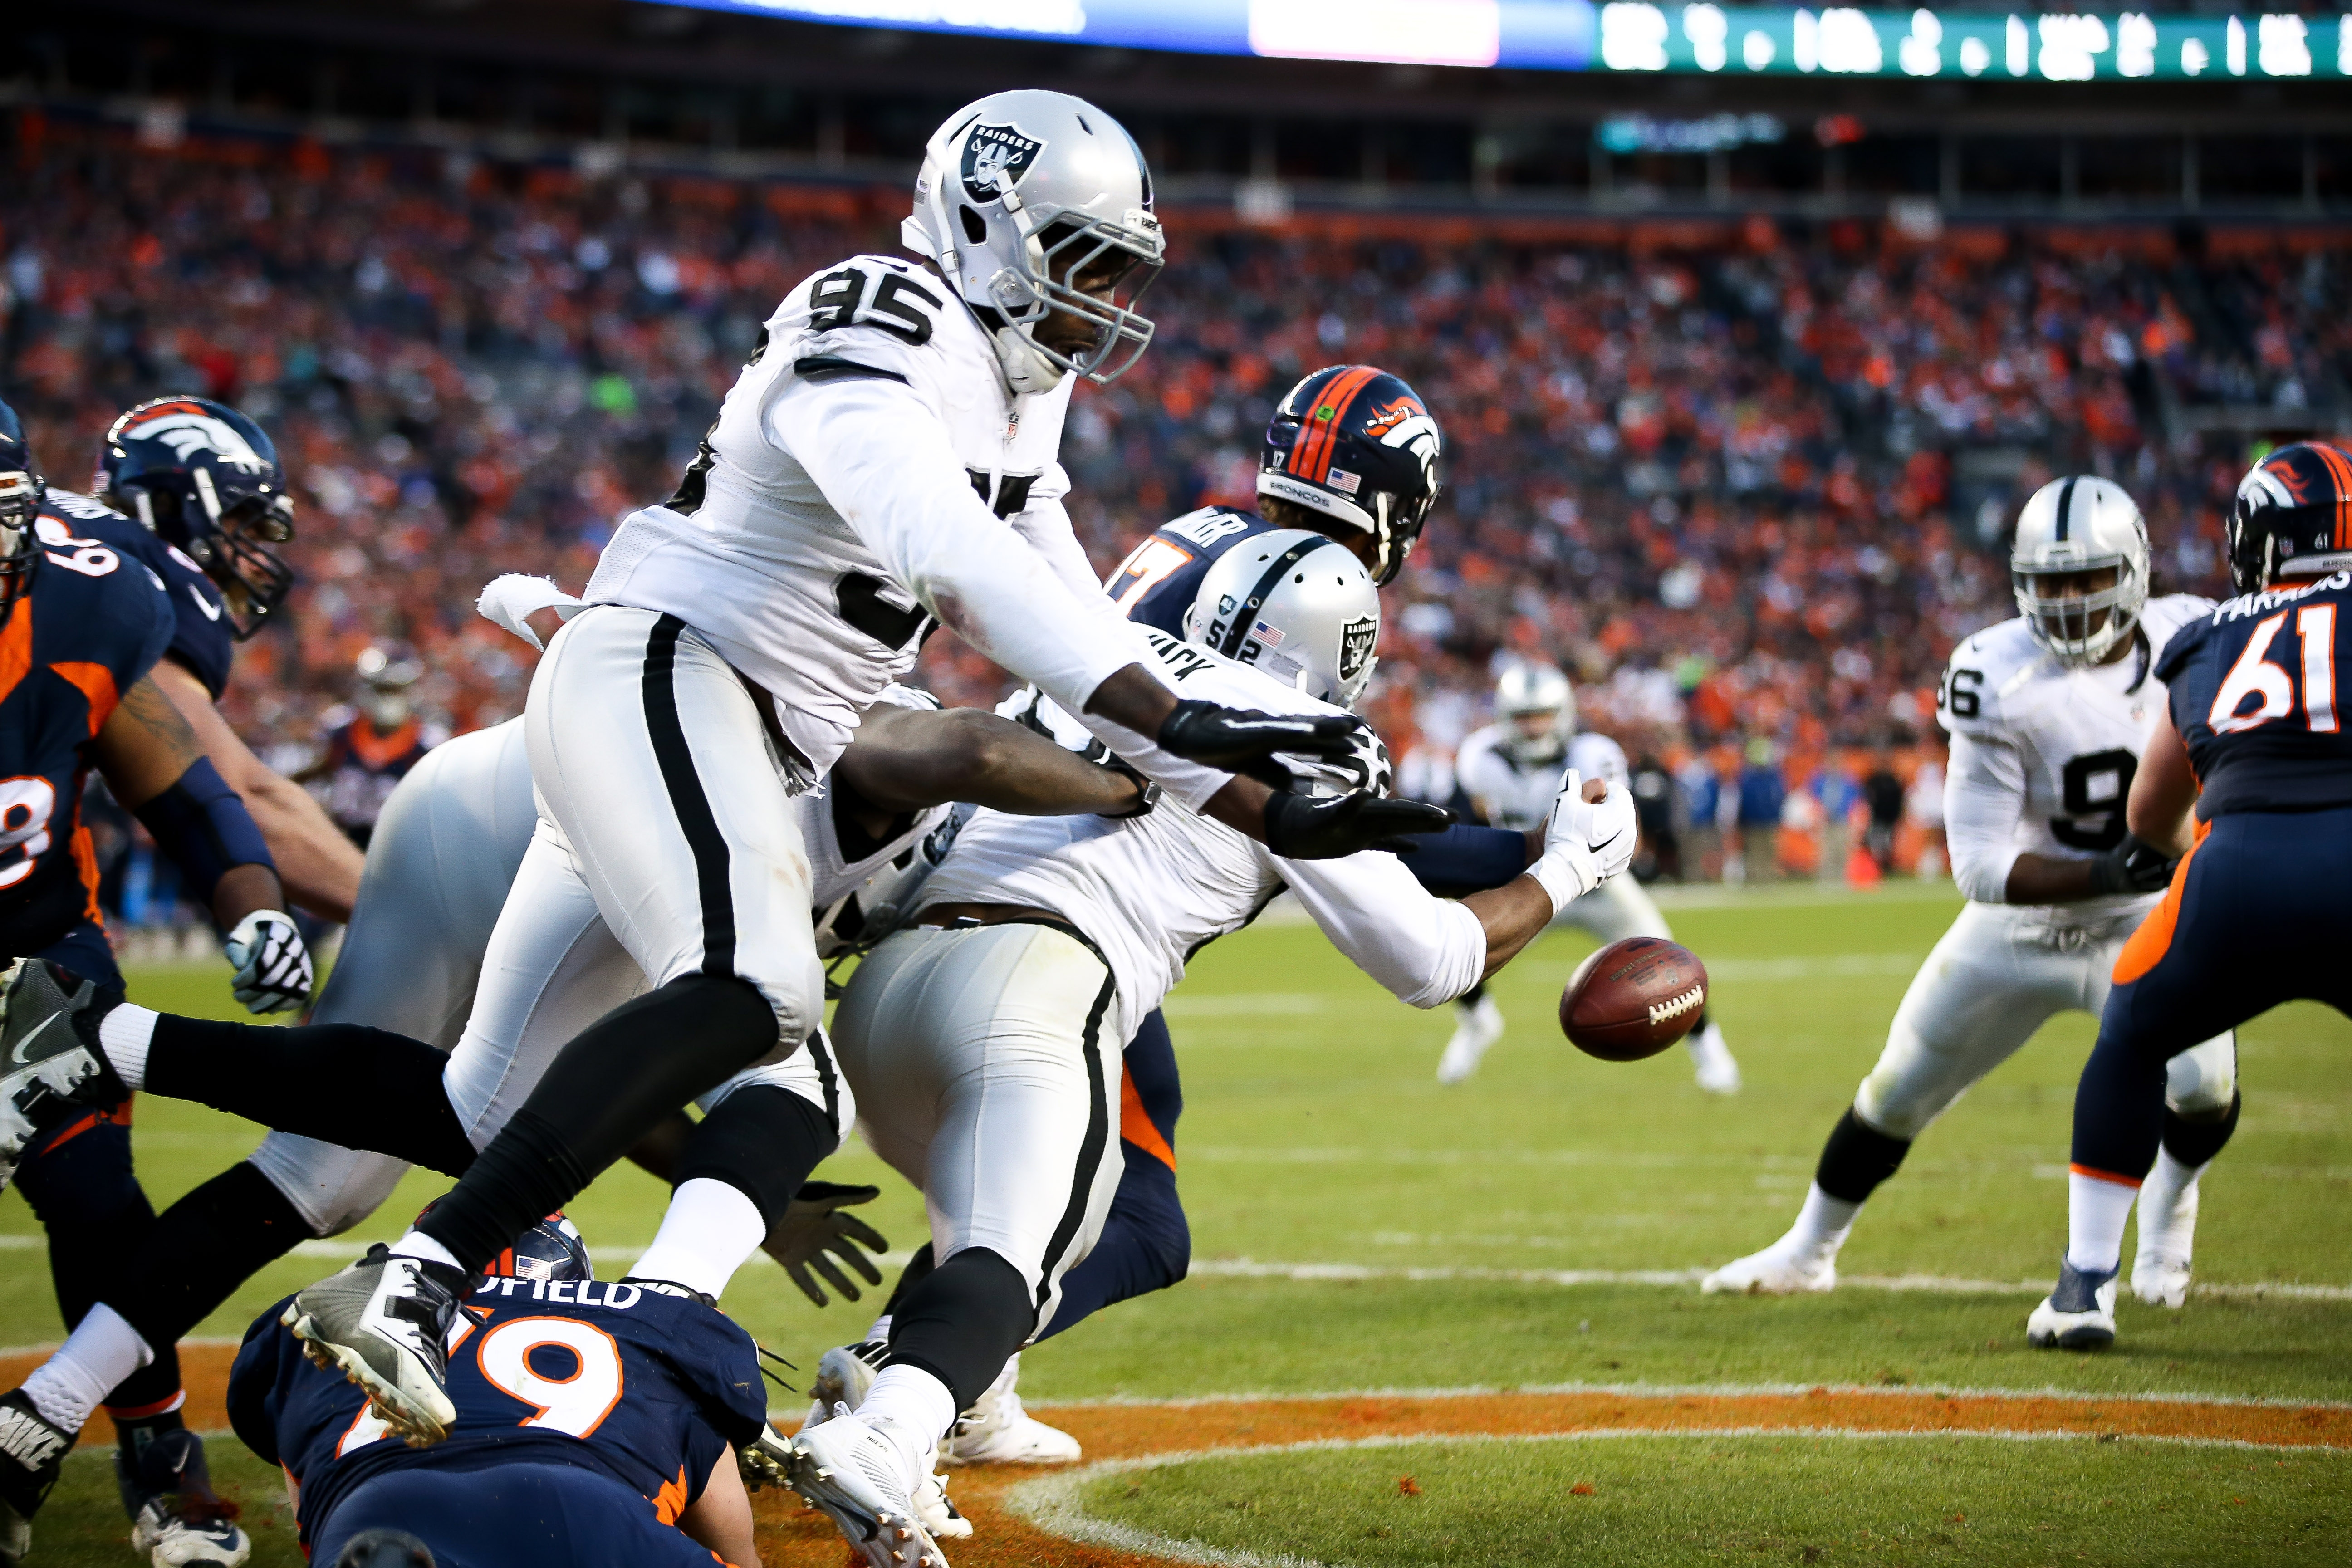 Broncos quarterback Brock Osweiler is stripped by former UB and current Raiders linebacker Khalil Mack resulting in a safety for Oakland.